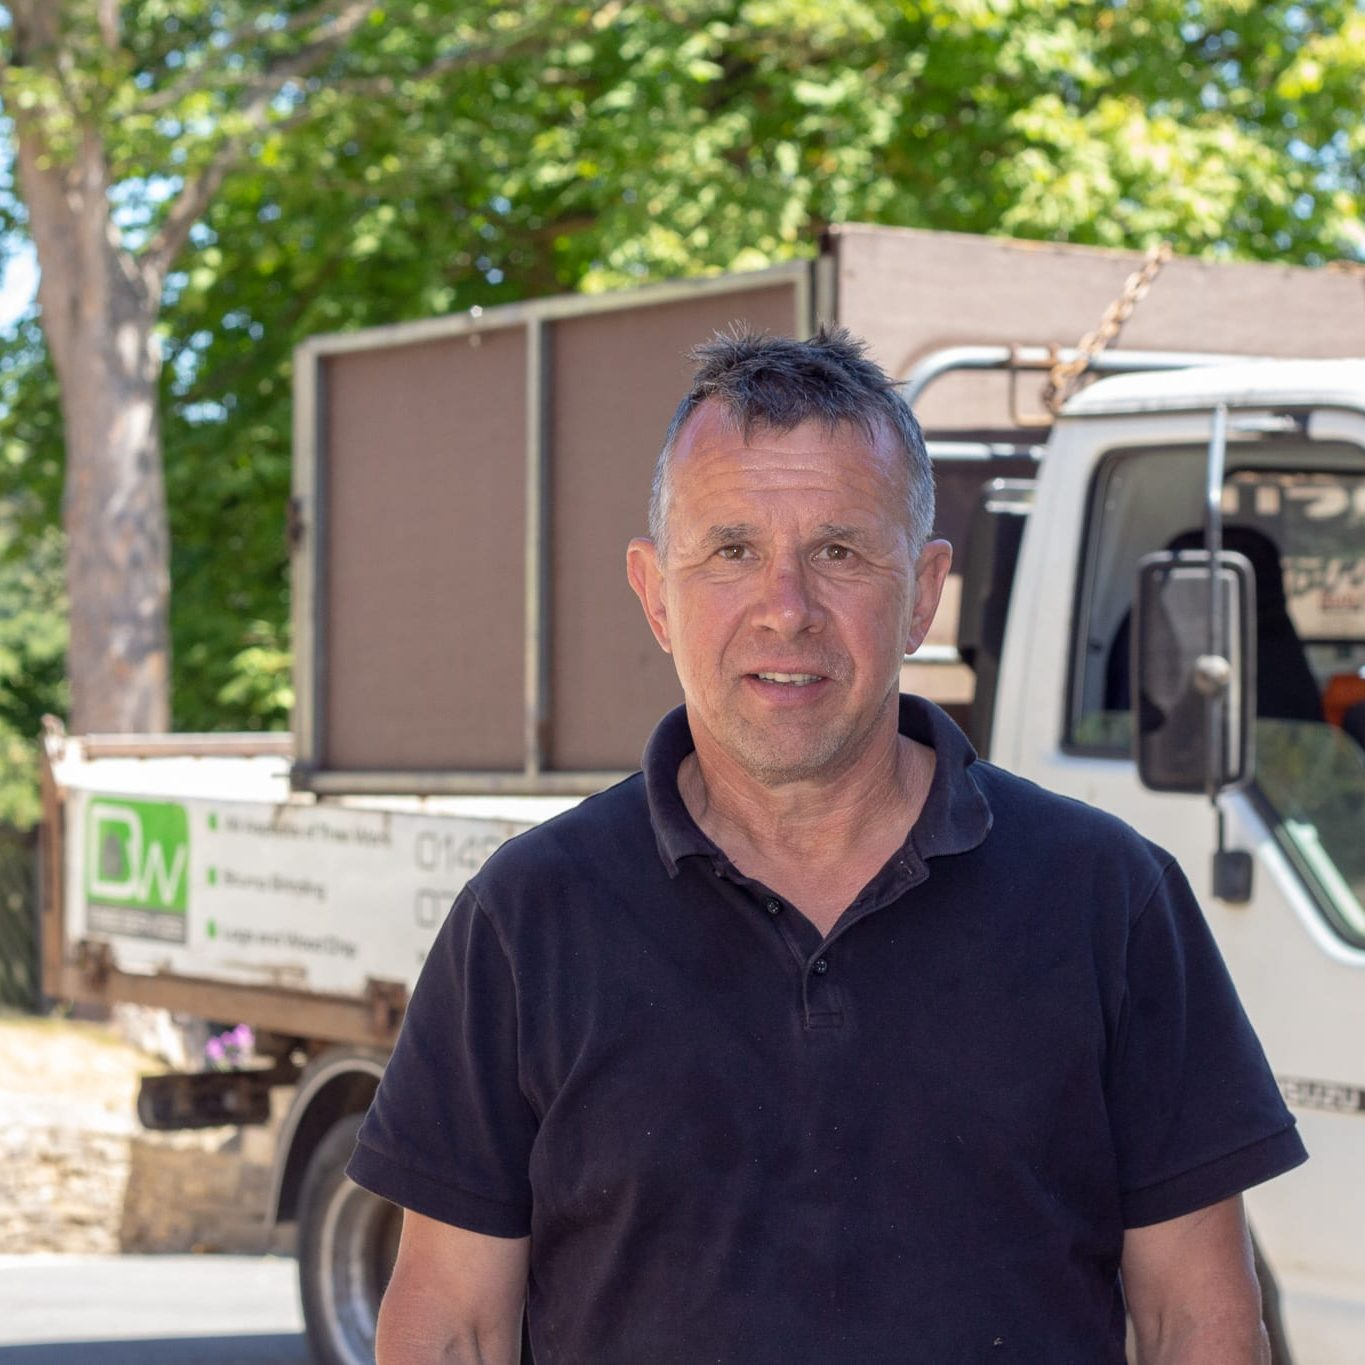 Photo of David owner and tree surgeon at D W Tree Services